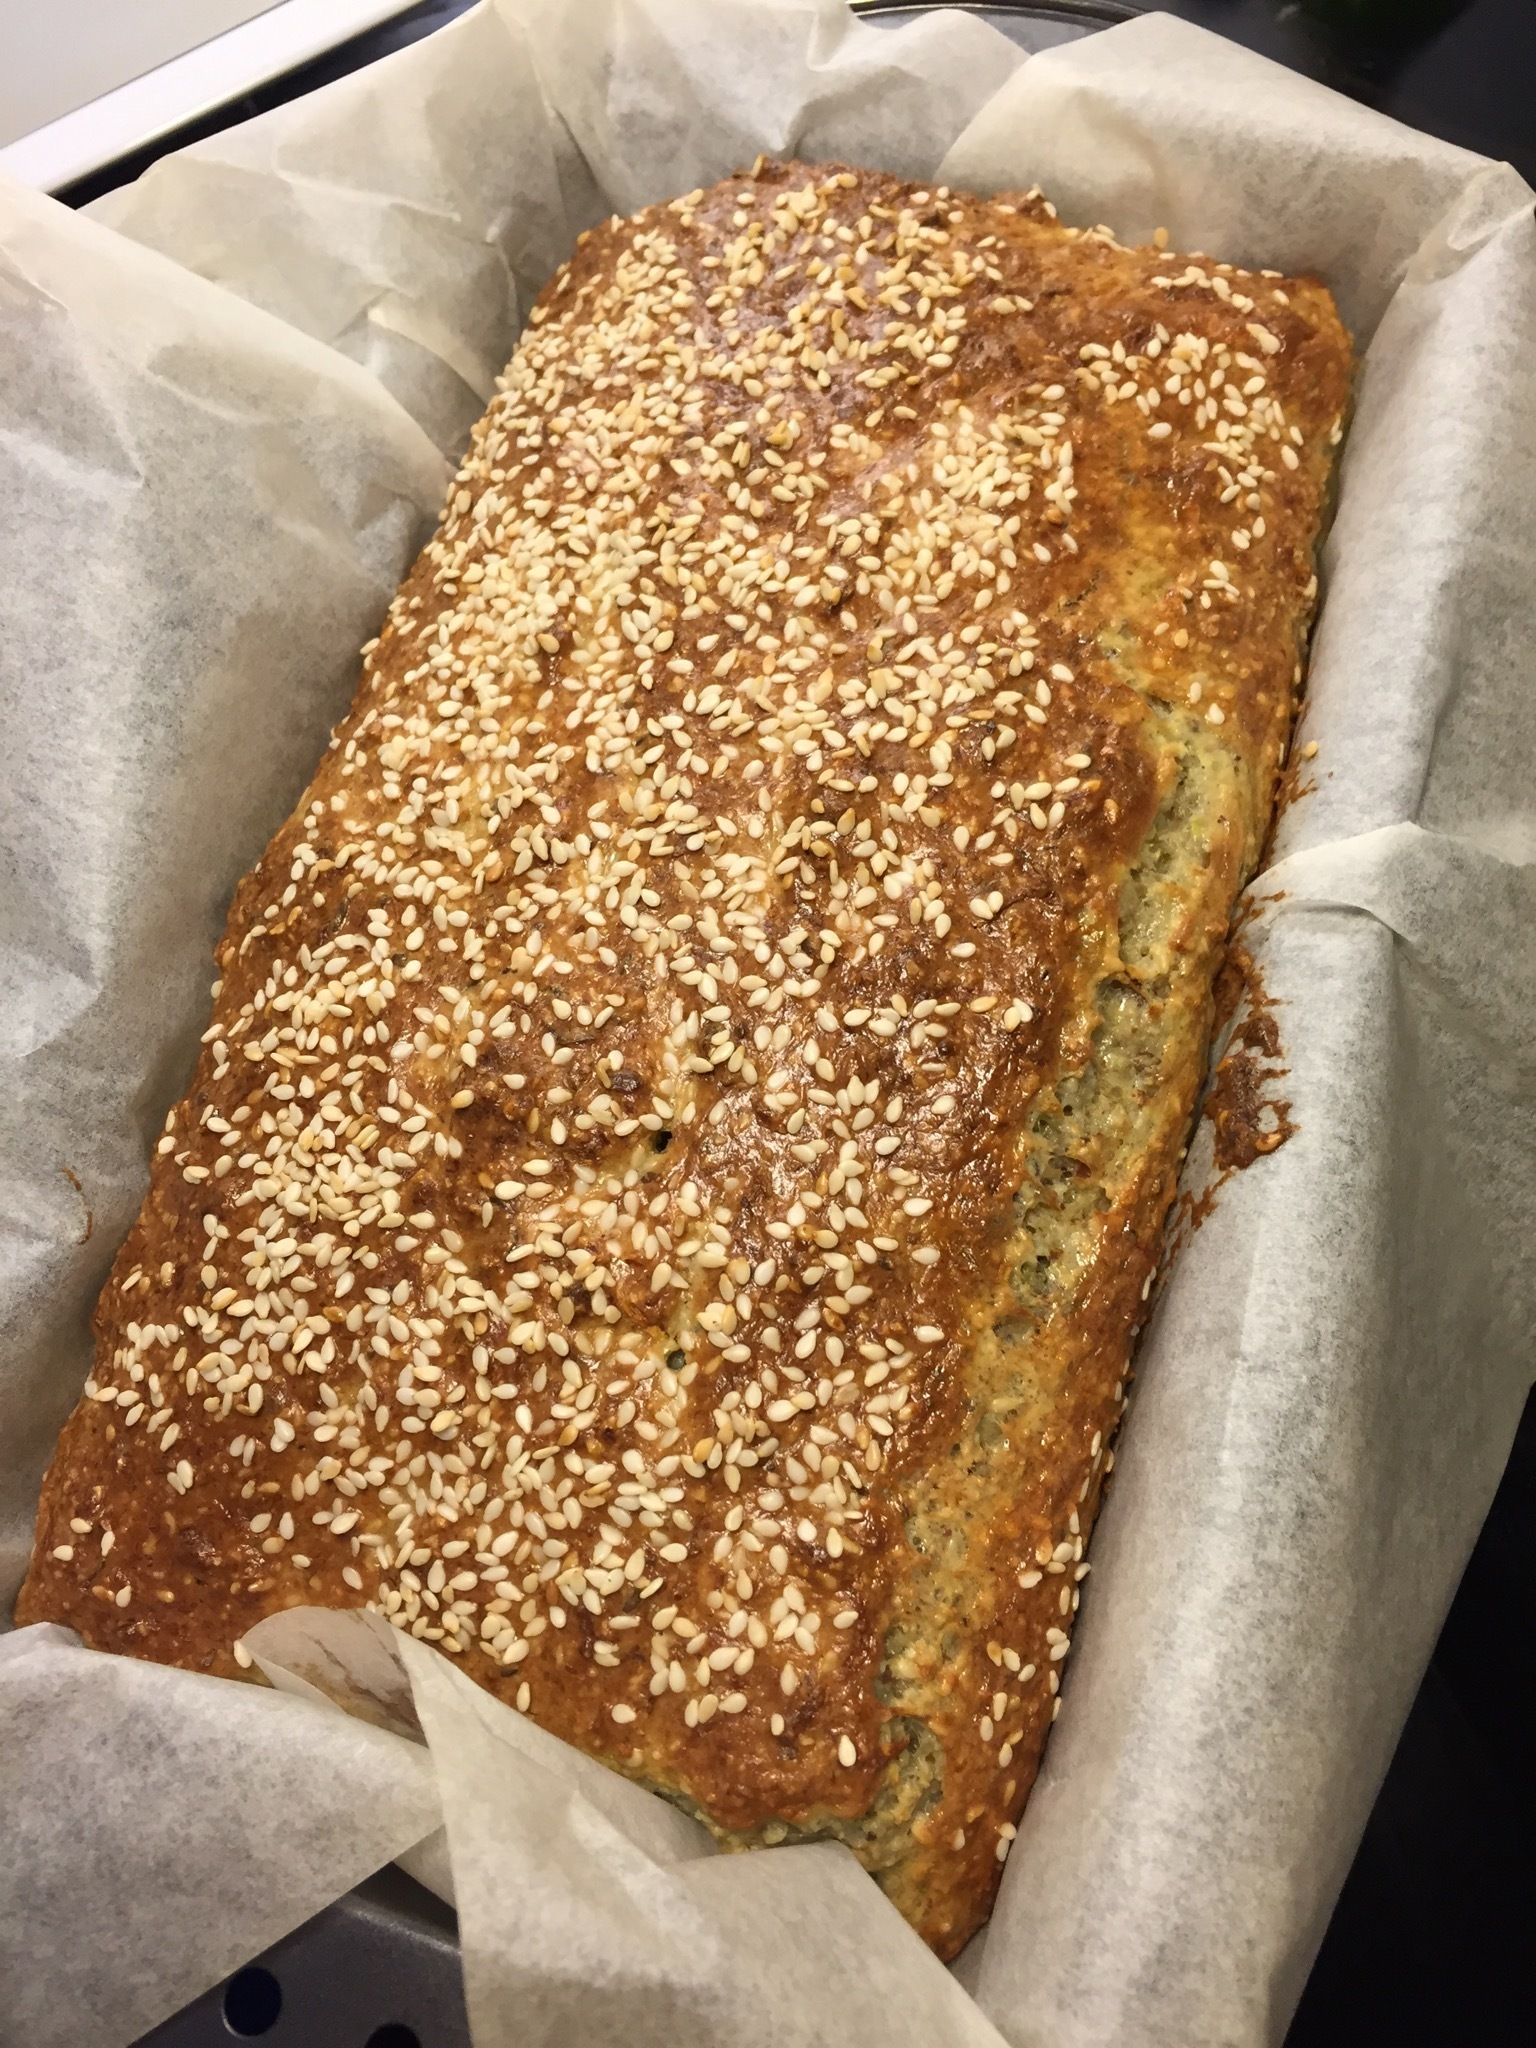 LCHF Bread with Zucchini